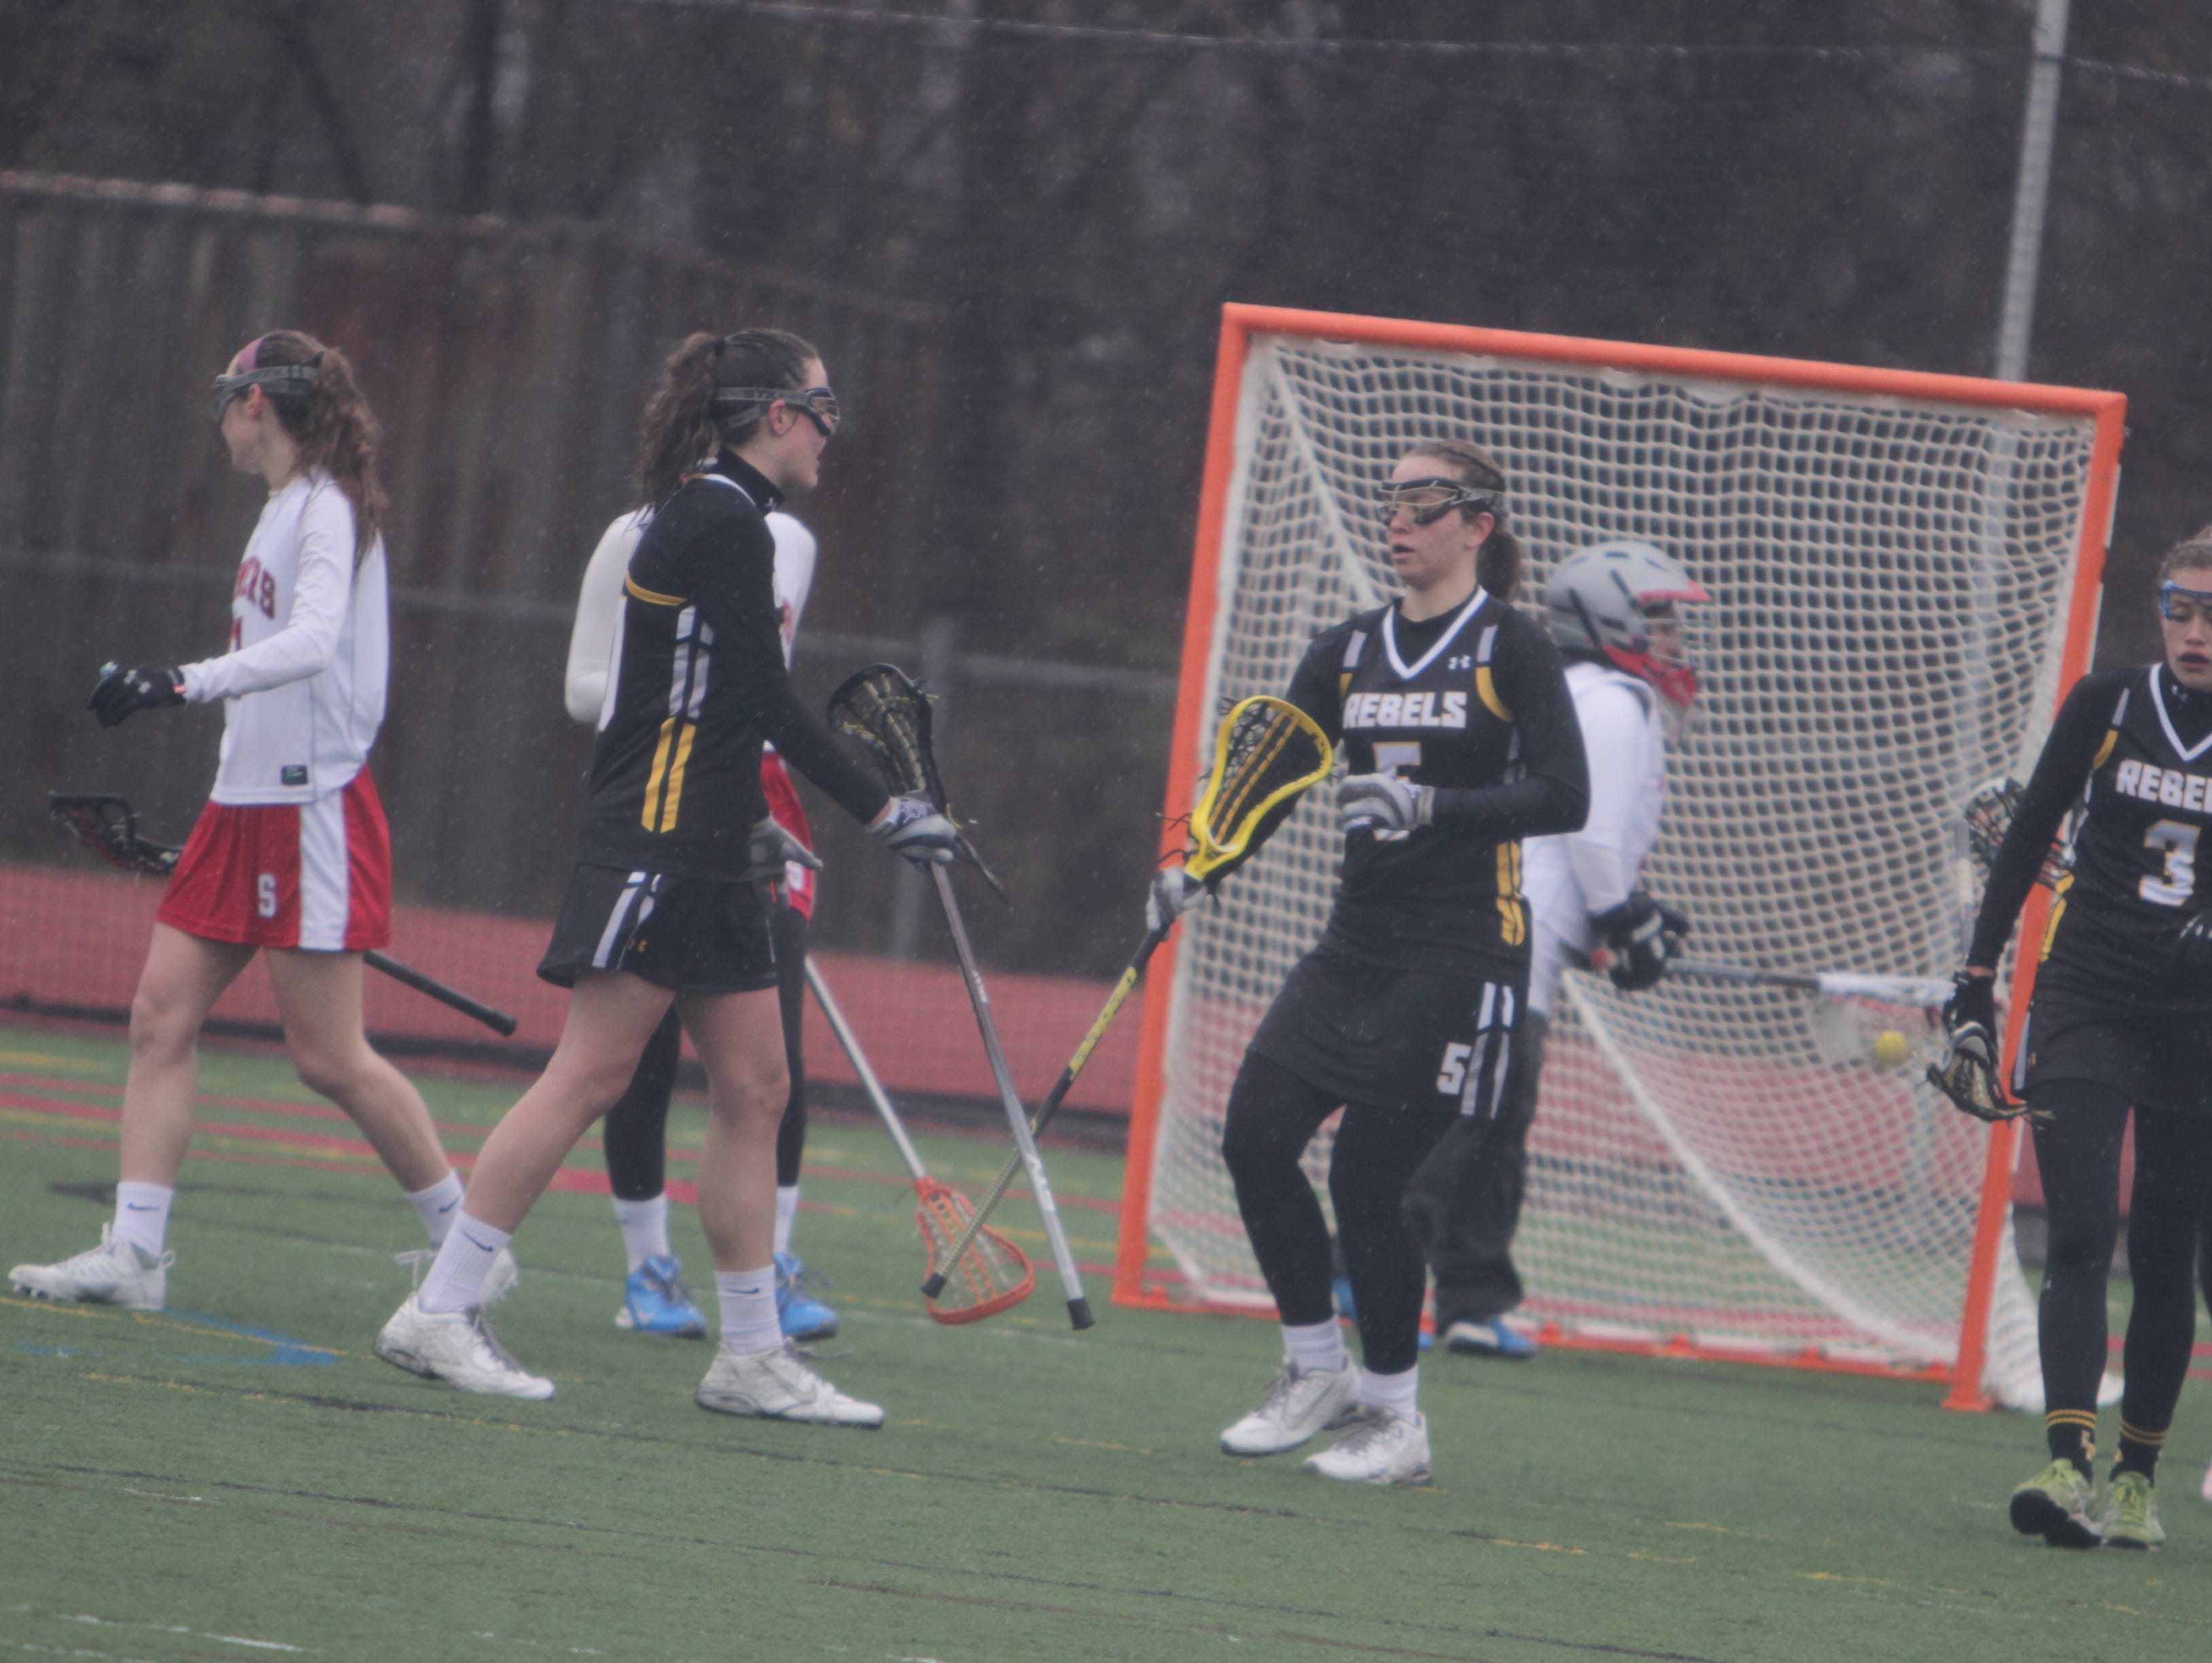 Game action during a Section 1 girls lacrosse game between Somers and Lakeland/Panas at Somers High School on Monday, March 28th, 2016. Somers won 15-8.